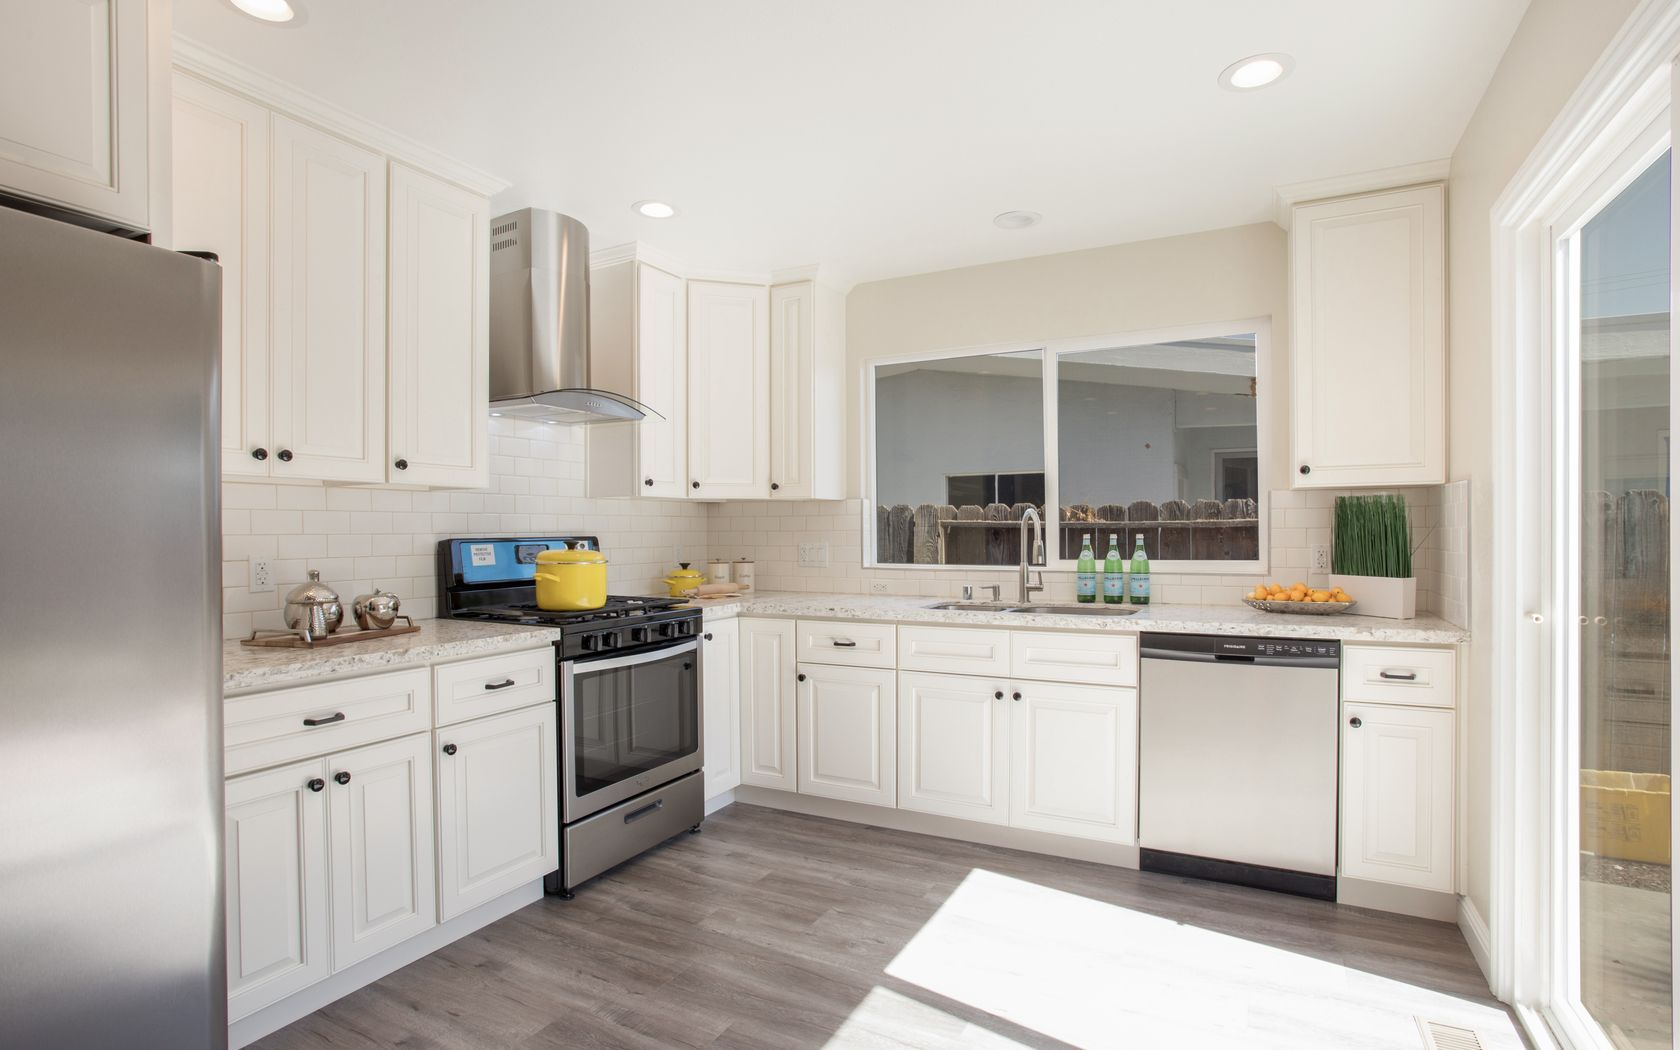 Zmc Cabinetry Customize Your Dream Kitchens